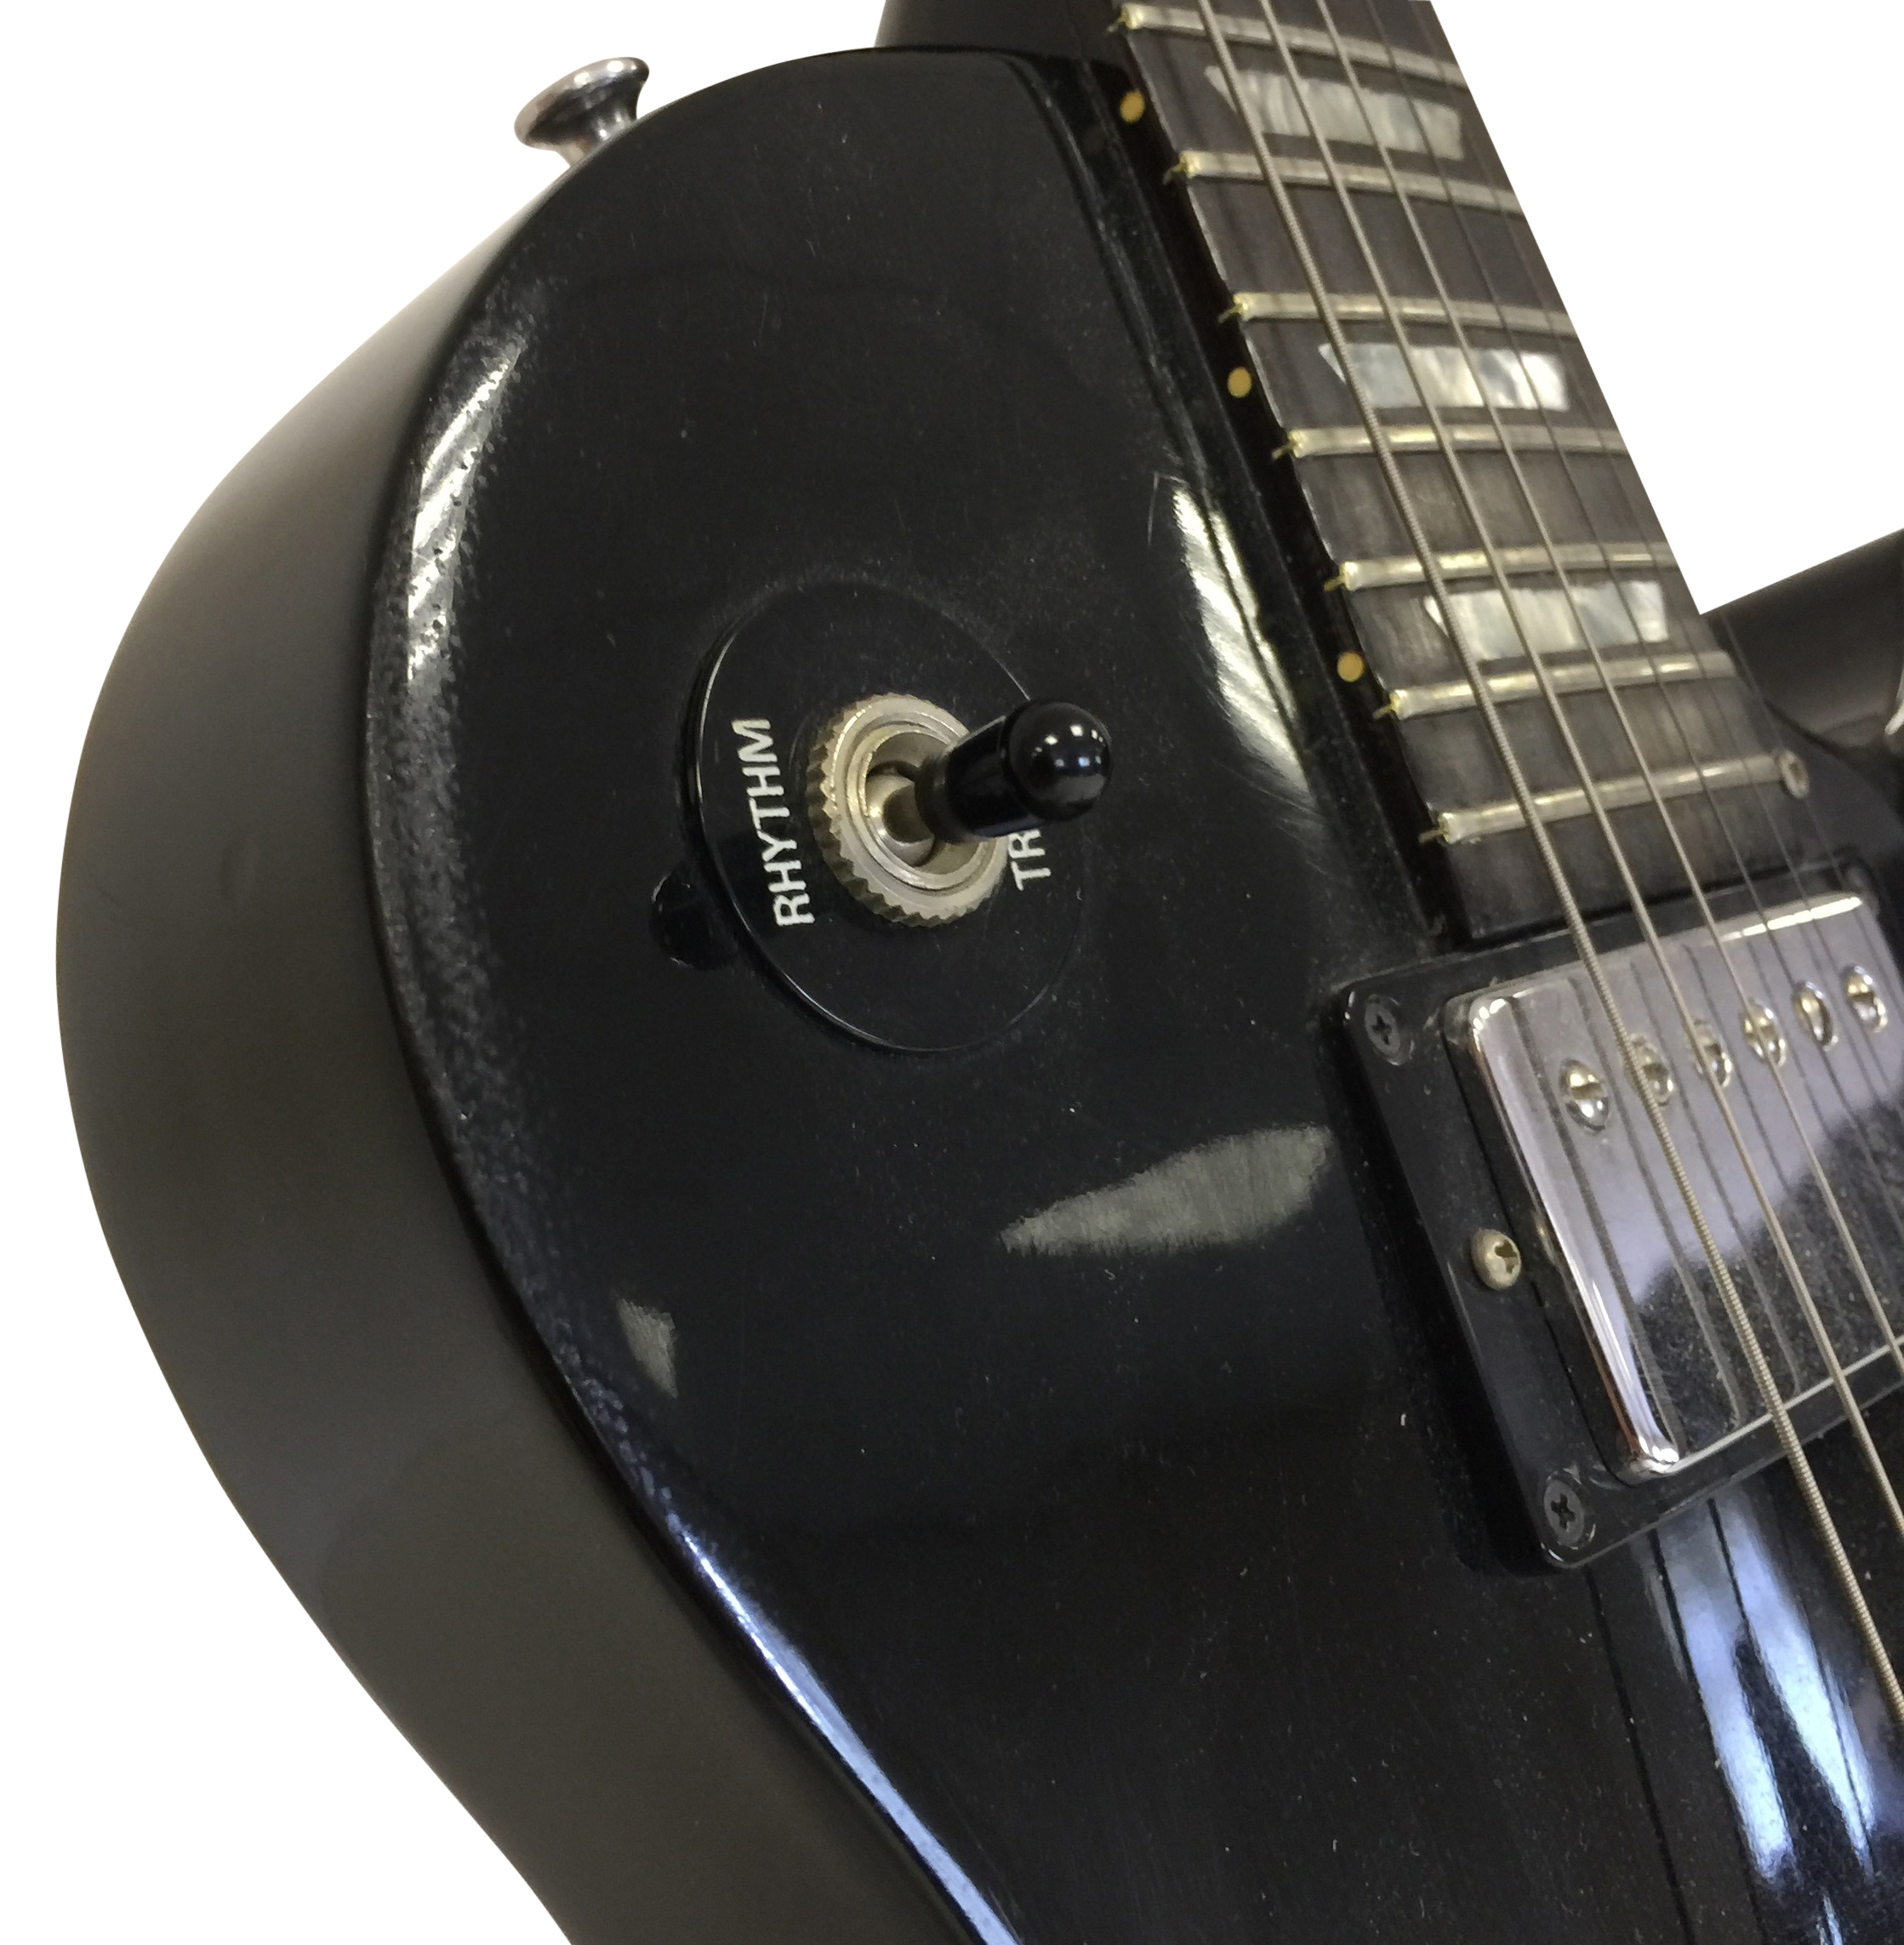 Lot 12 - GIBSON LES PAUL STUDIO MODEL ELECTRIC GUITAR WITH HARD CASE. A fine example here.